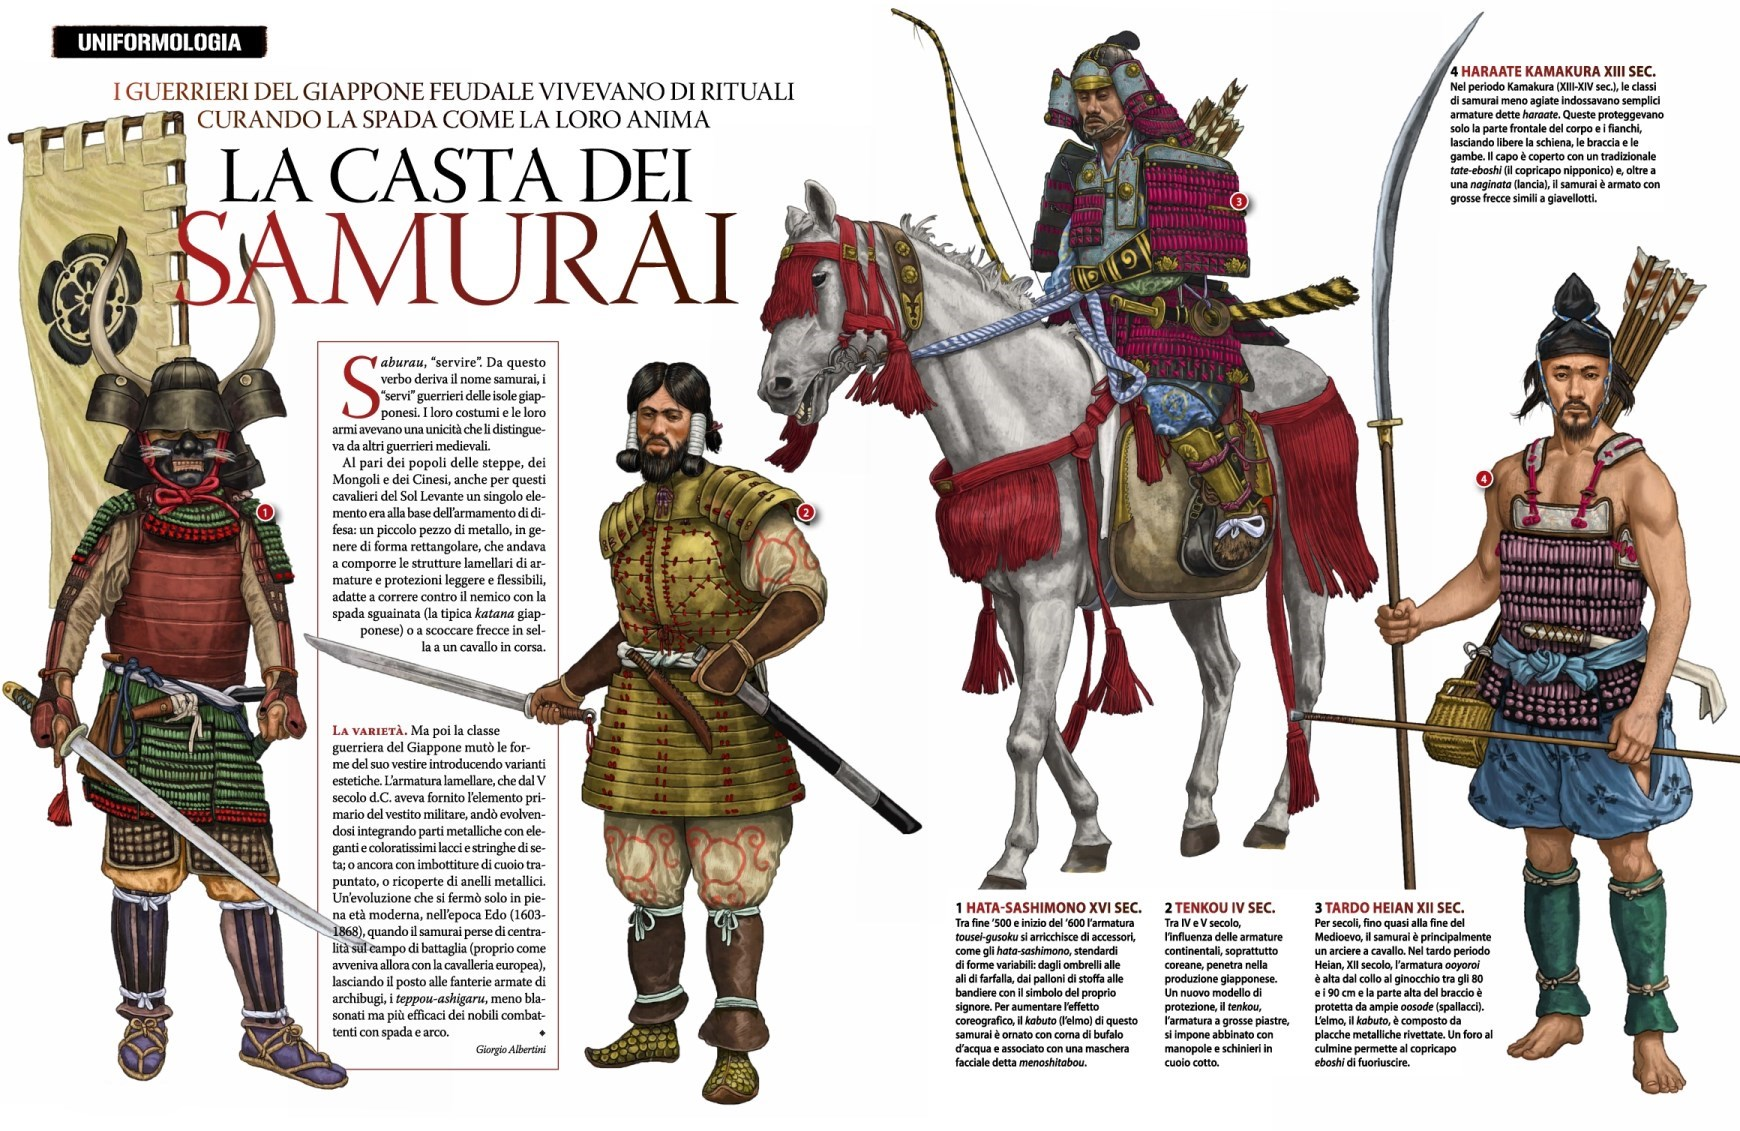 The characteristics of the samurai a japanese warrior class